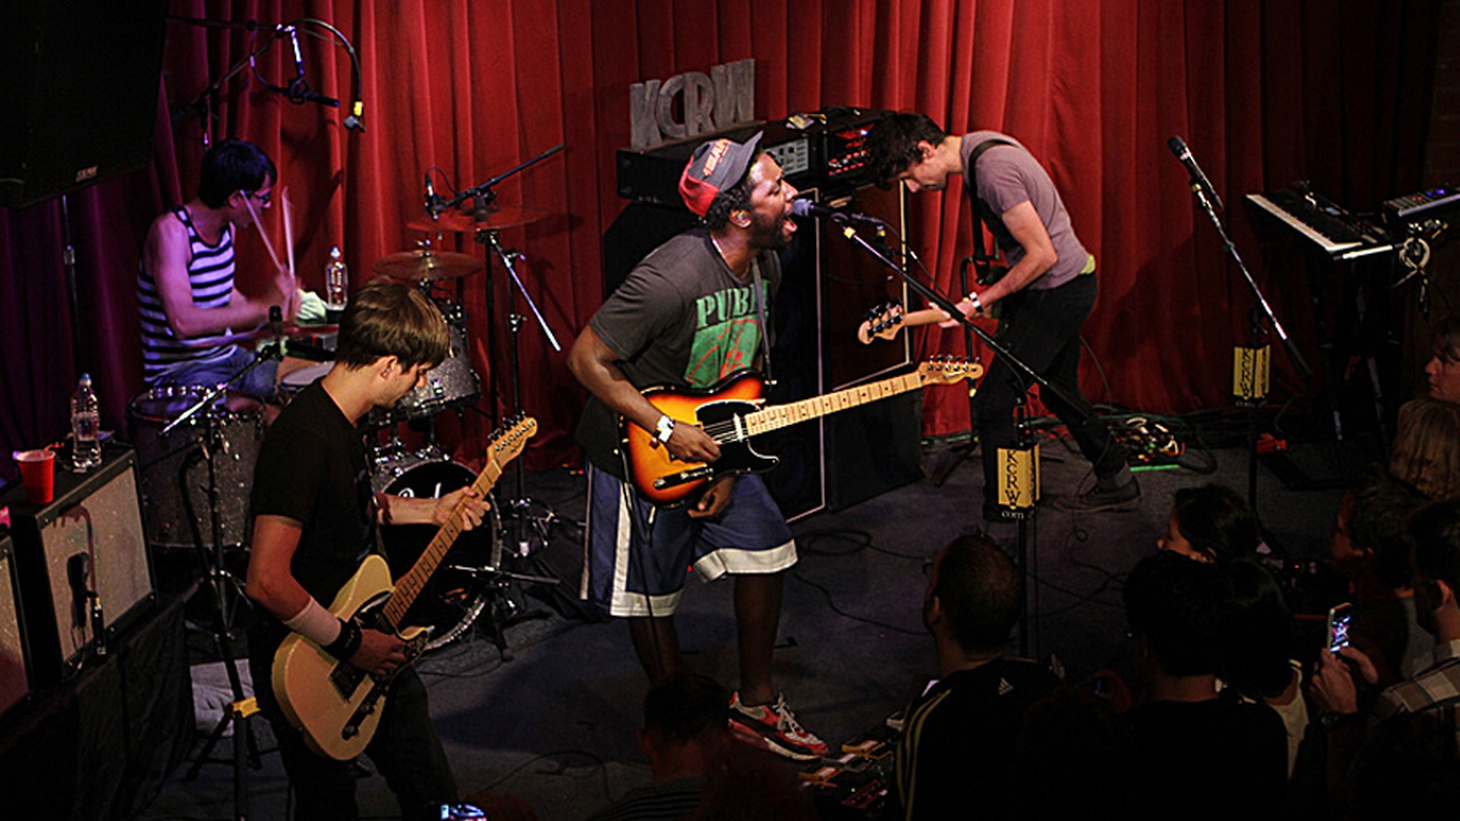 UK dance-punk purveyors Bloc Party return to KCRW's Apogee Sessions to premiere live versions of songs from their new album, with a decidedly more rock-driven sound.